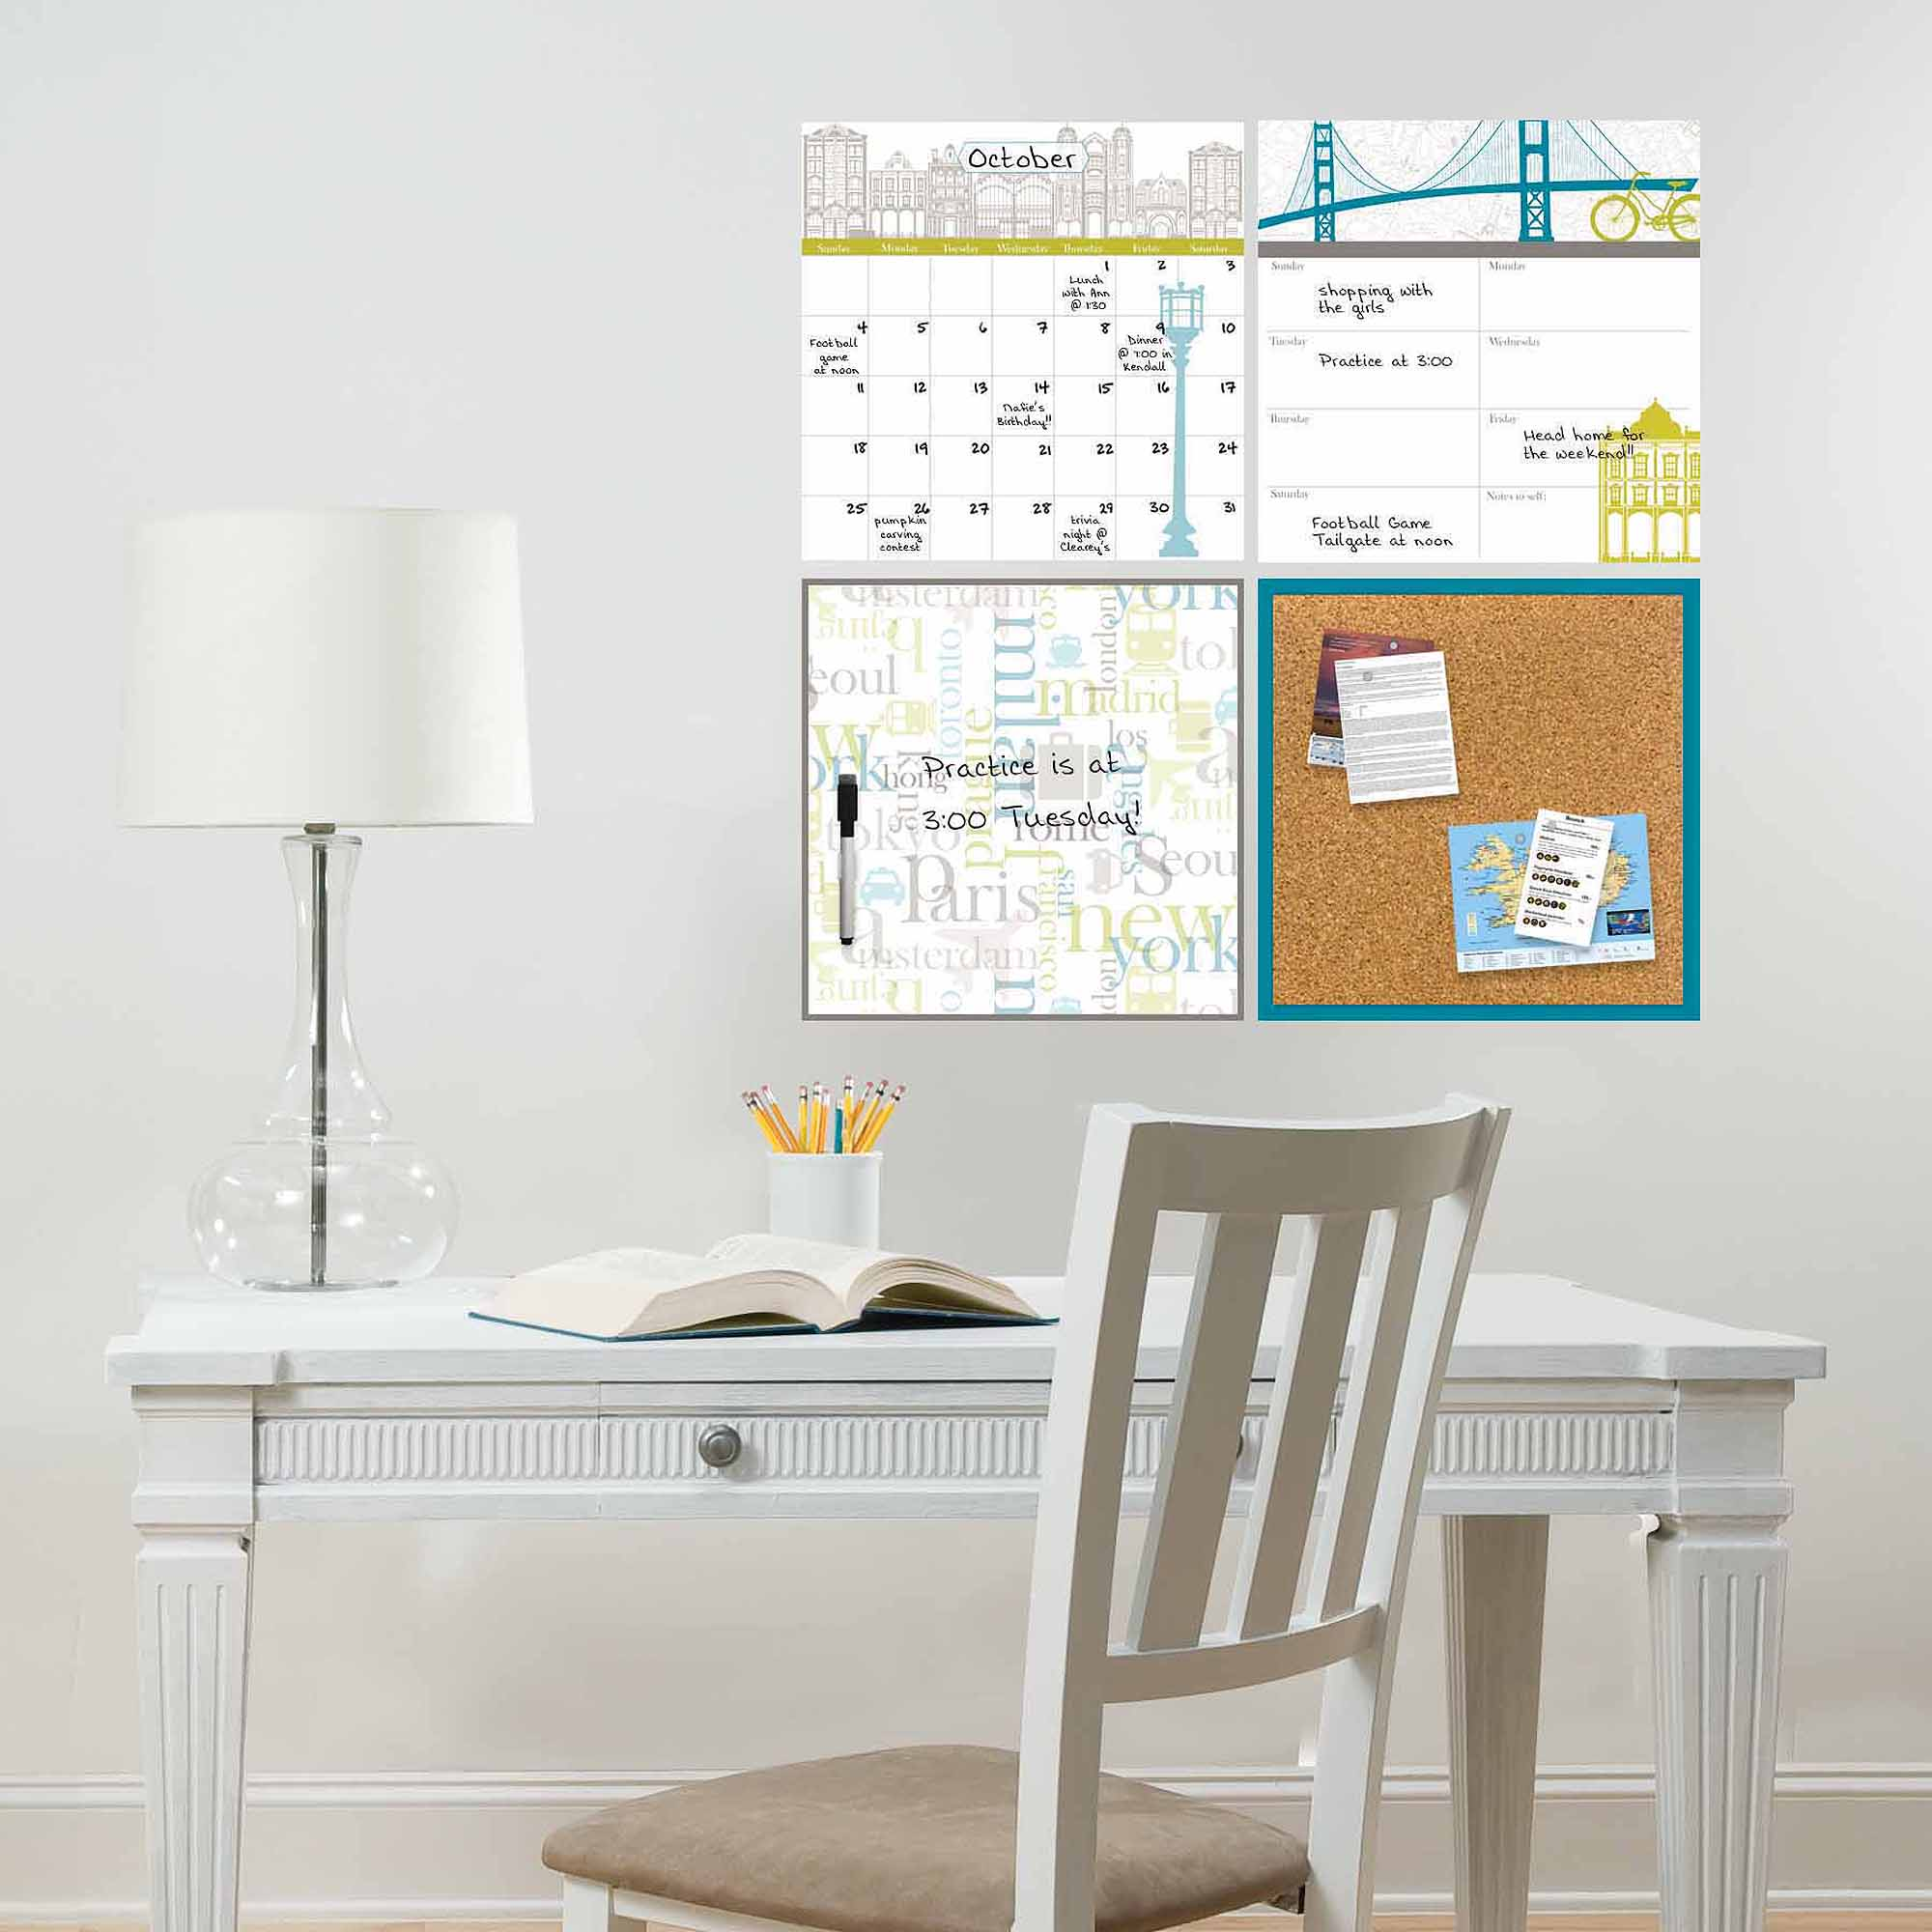 WallPops Globe Trotter Organization Decals Kit